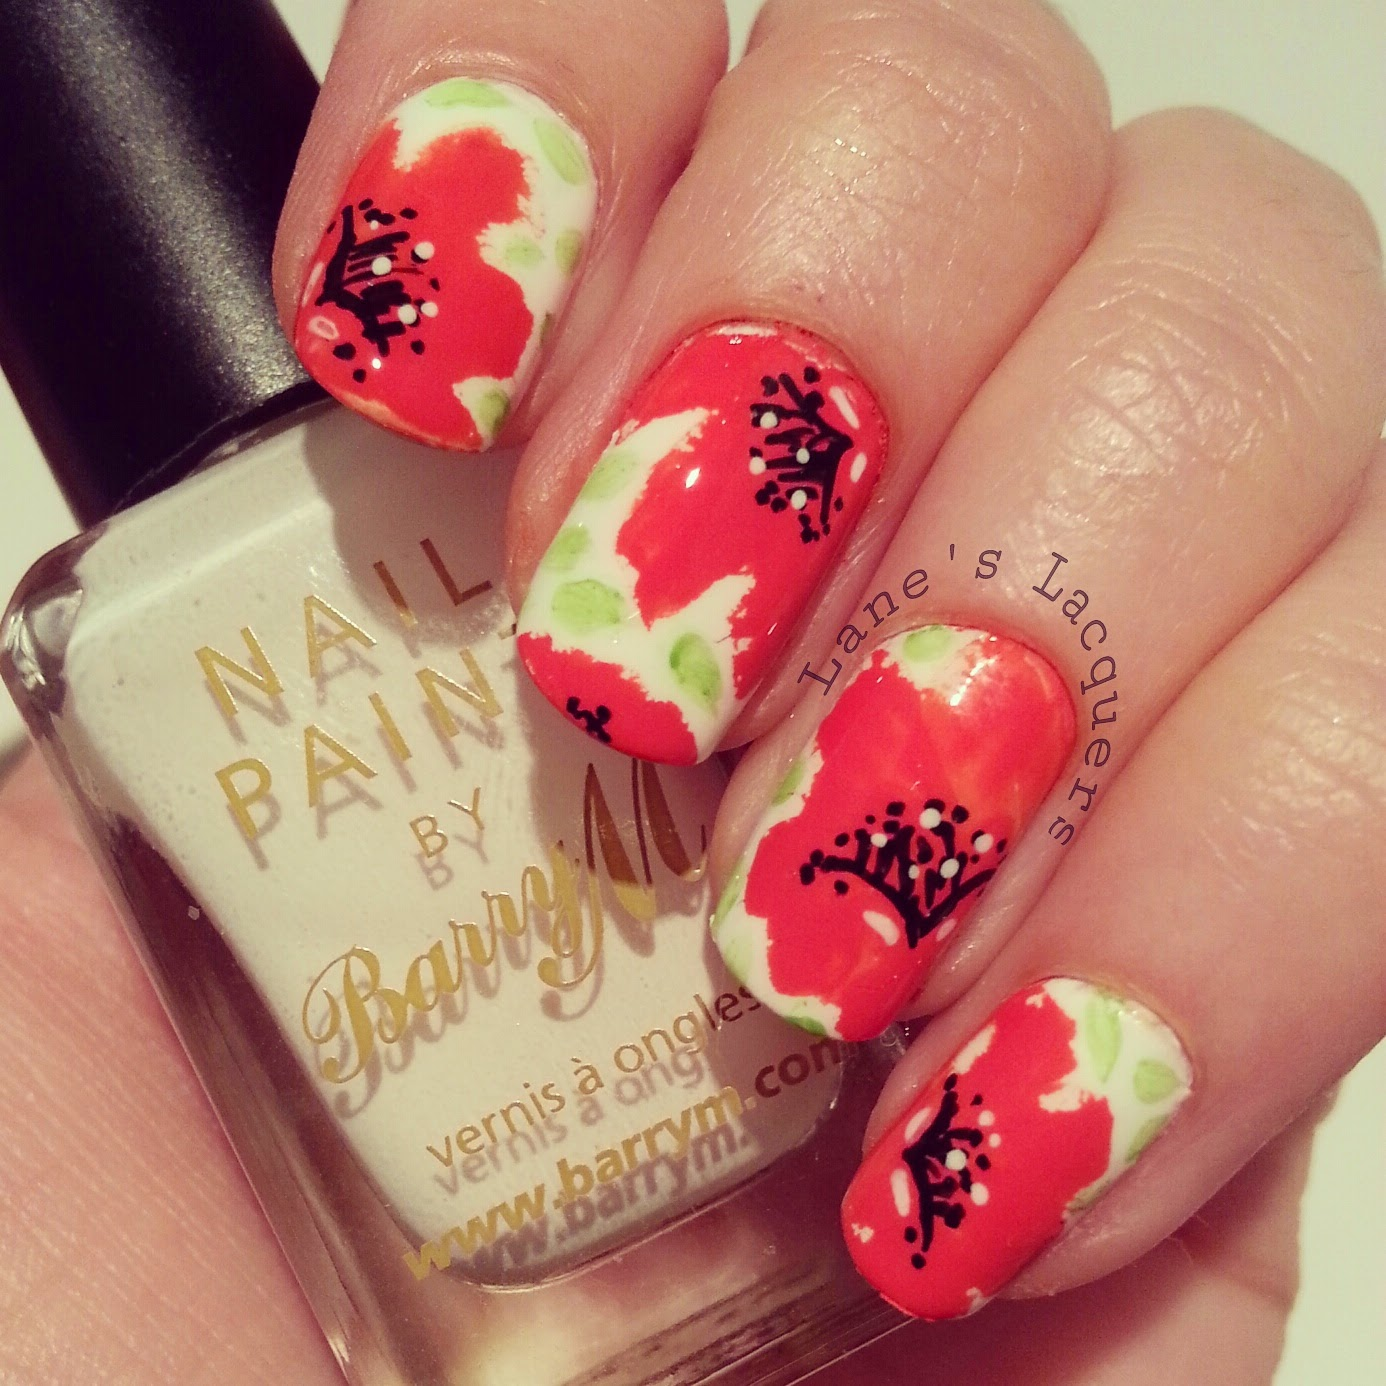 barry-m-rememberance-sunday-poppy-nail-art